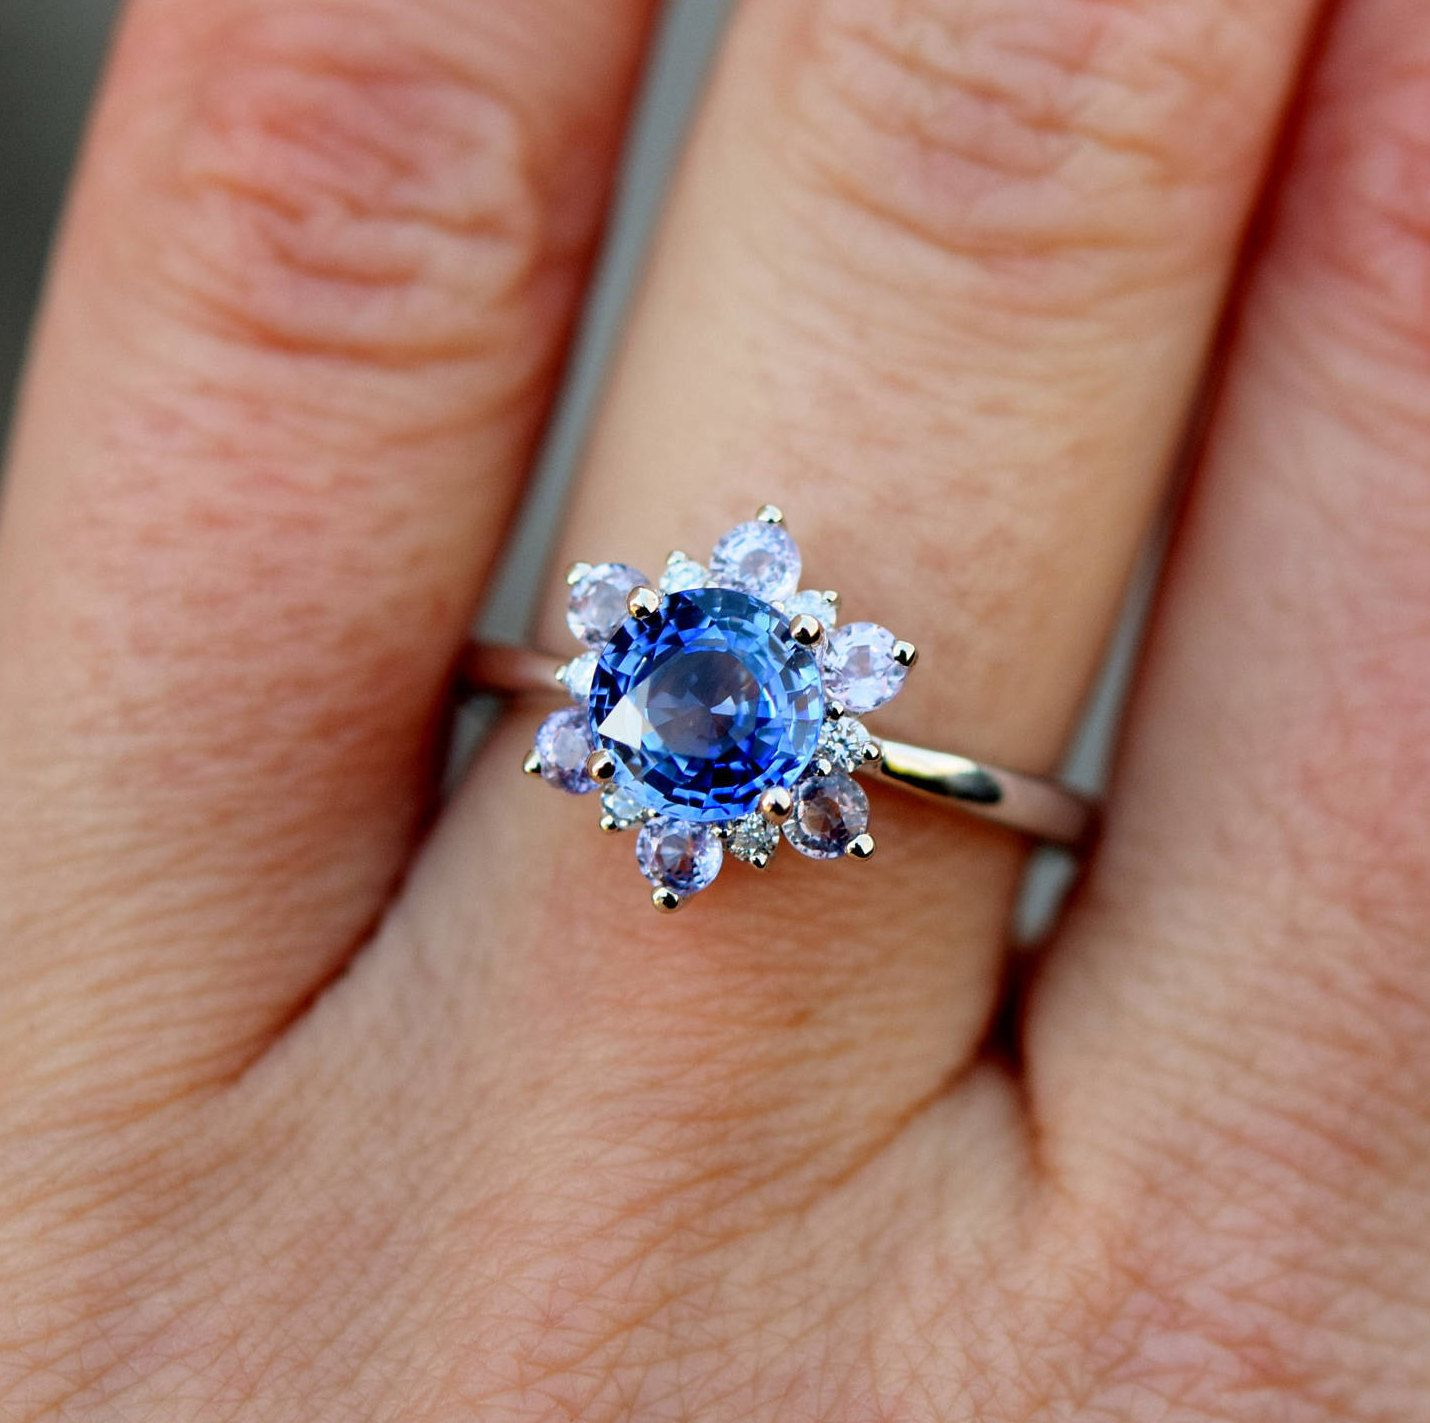 Snowflake Ring Sapphire Engagement Ring Round Blue Sapphire Ring Diamond Rin Sapphire Engagement Ring Blue Round Blue Sapphire Ring White Gold Engagement Rings